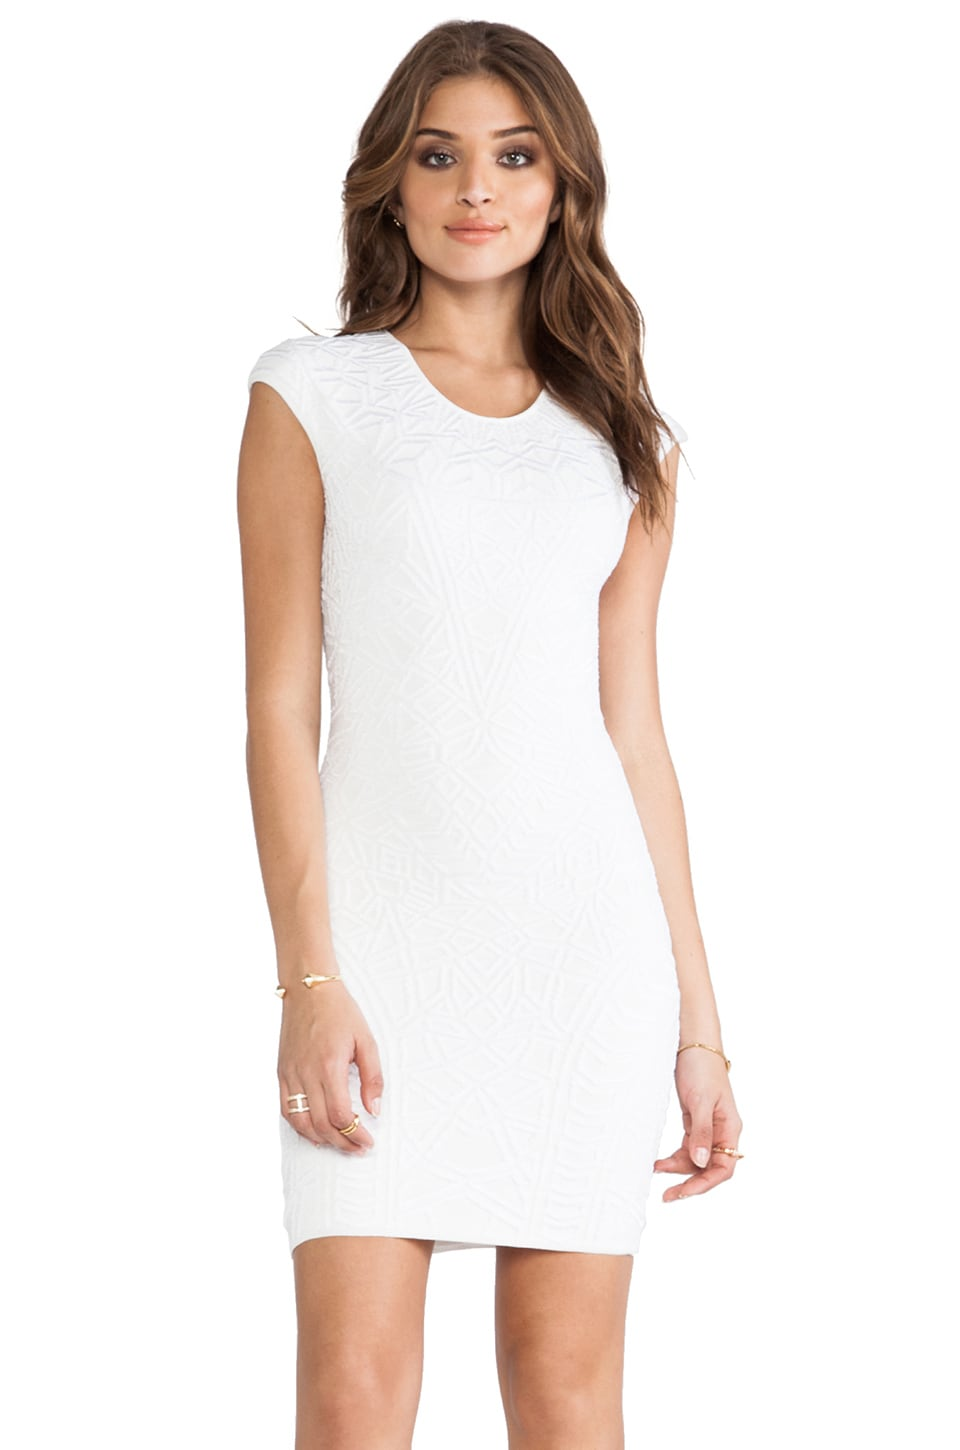 RVN Geo 3D Jacq Dress in White & White